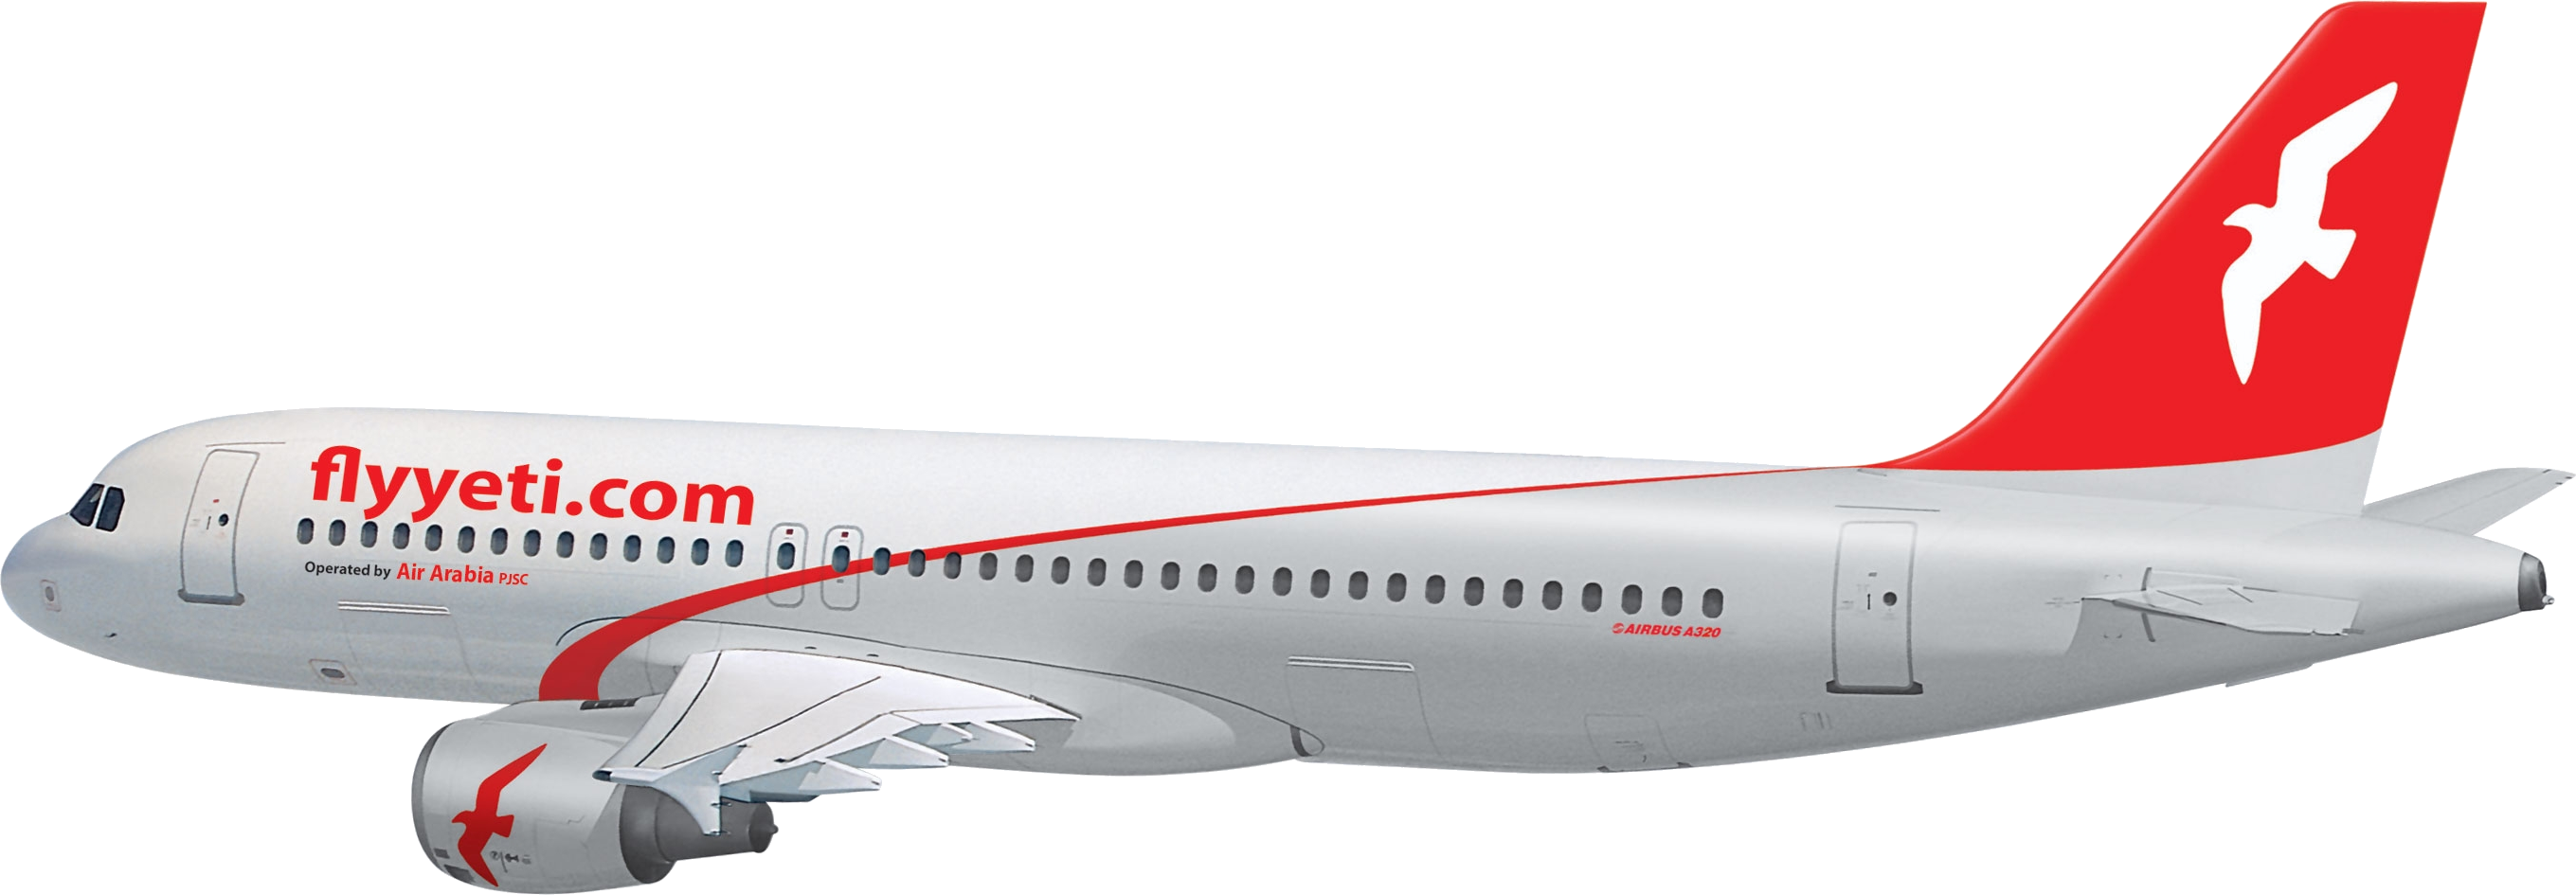 Air Plane Png Hd - Plane Png Image, Transparent background PNG HD thumbnail